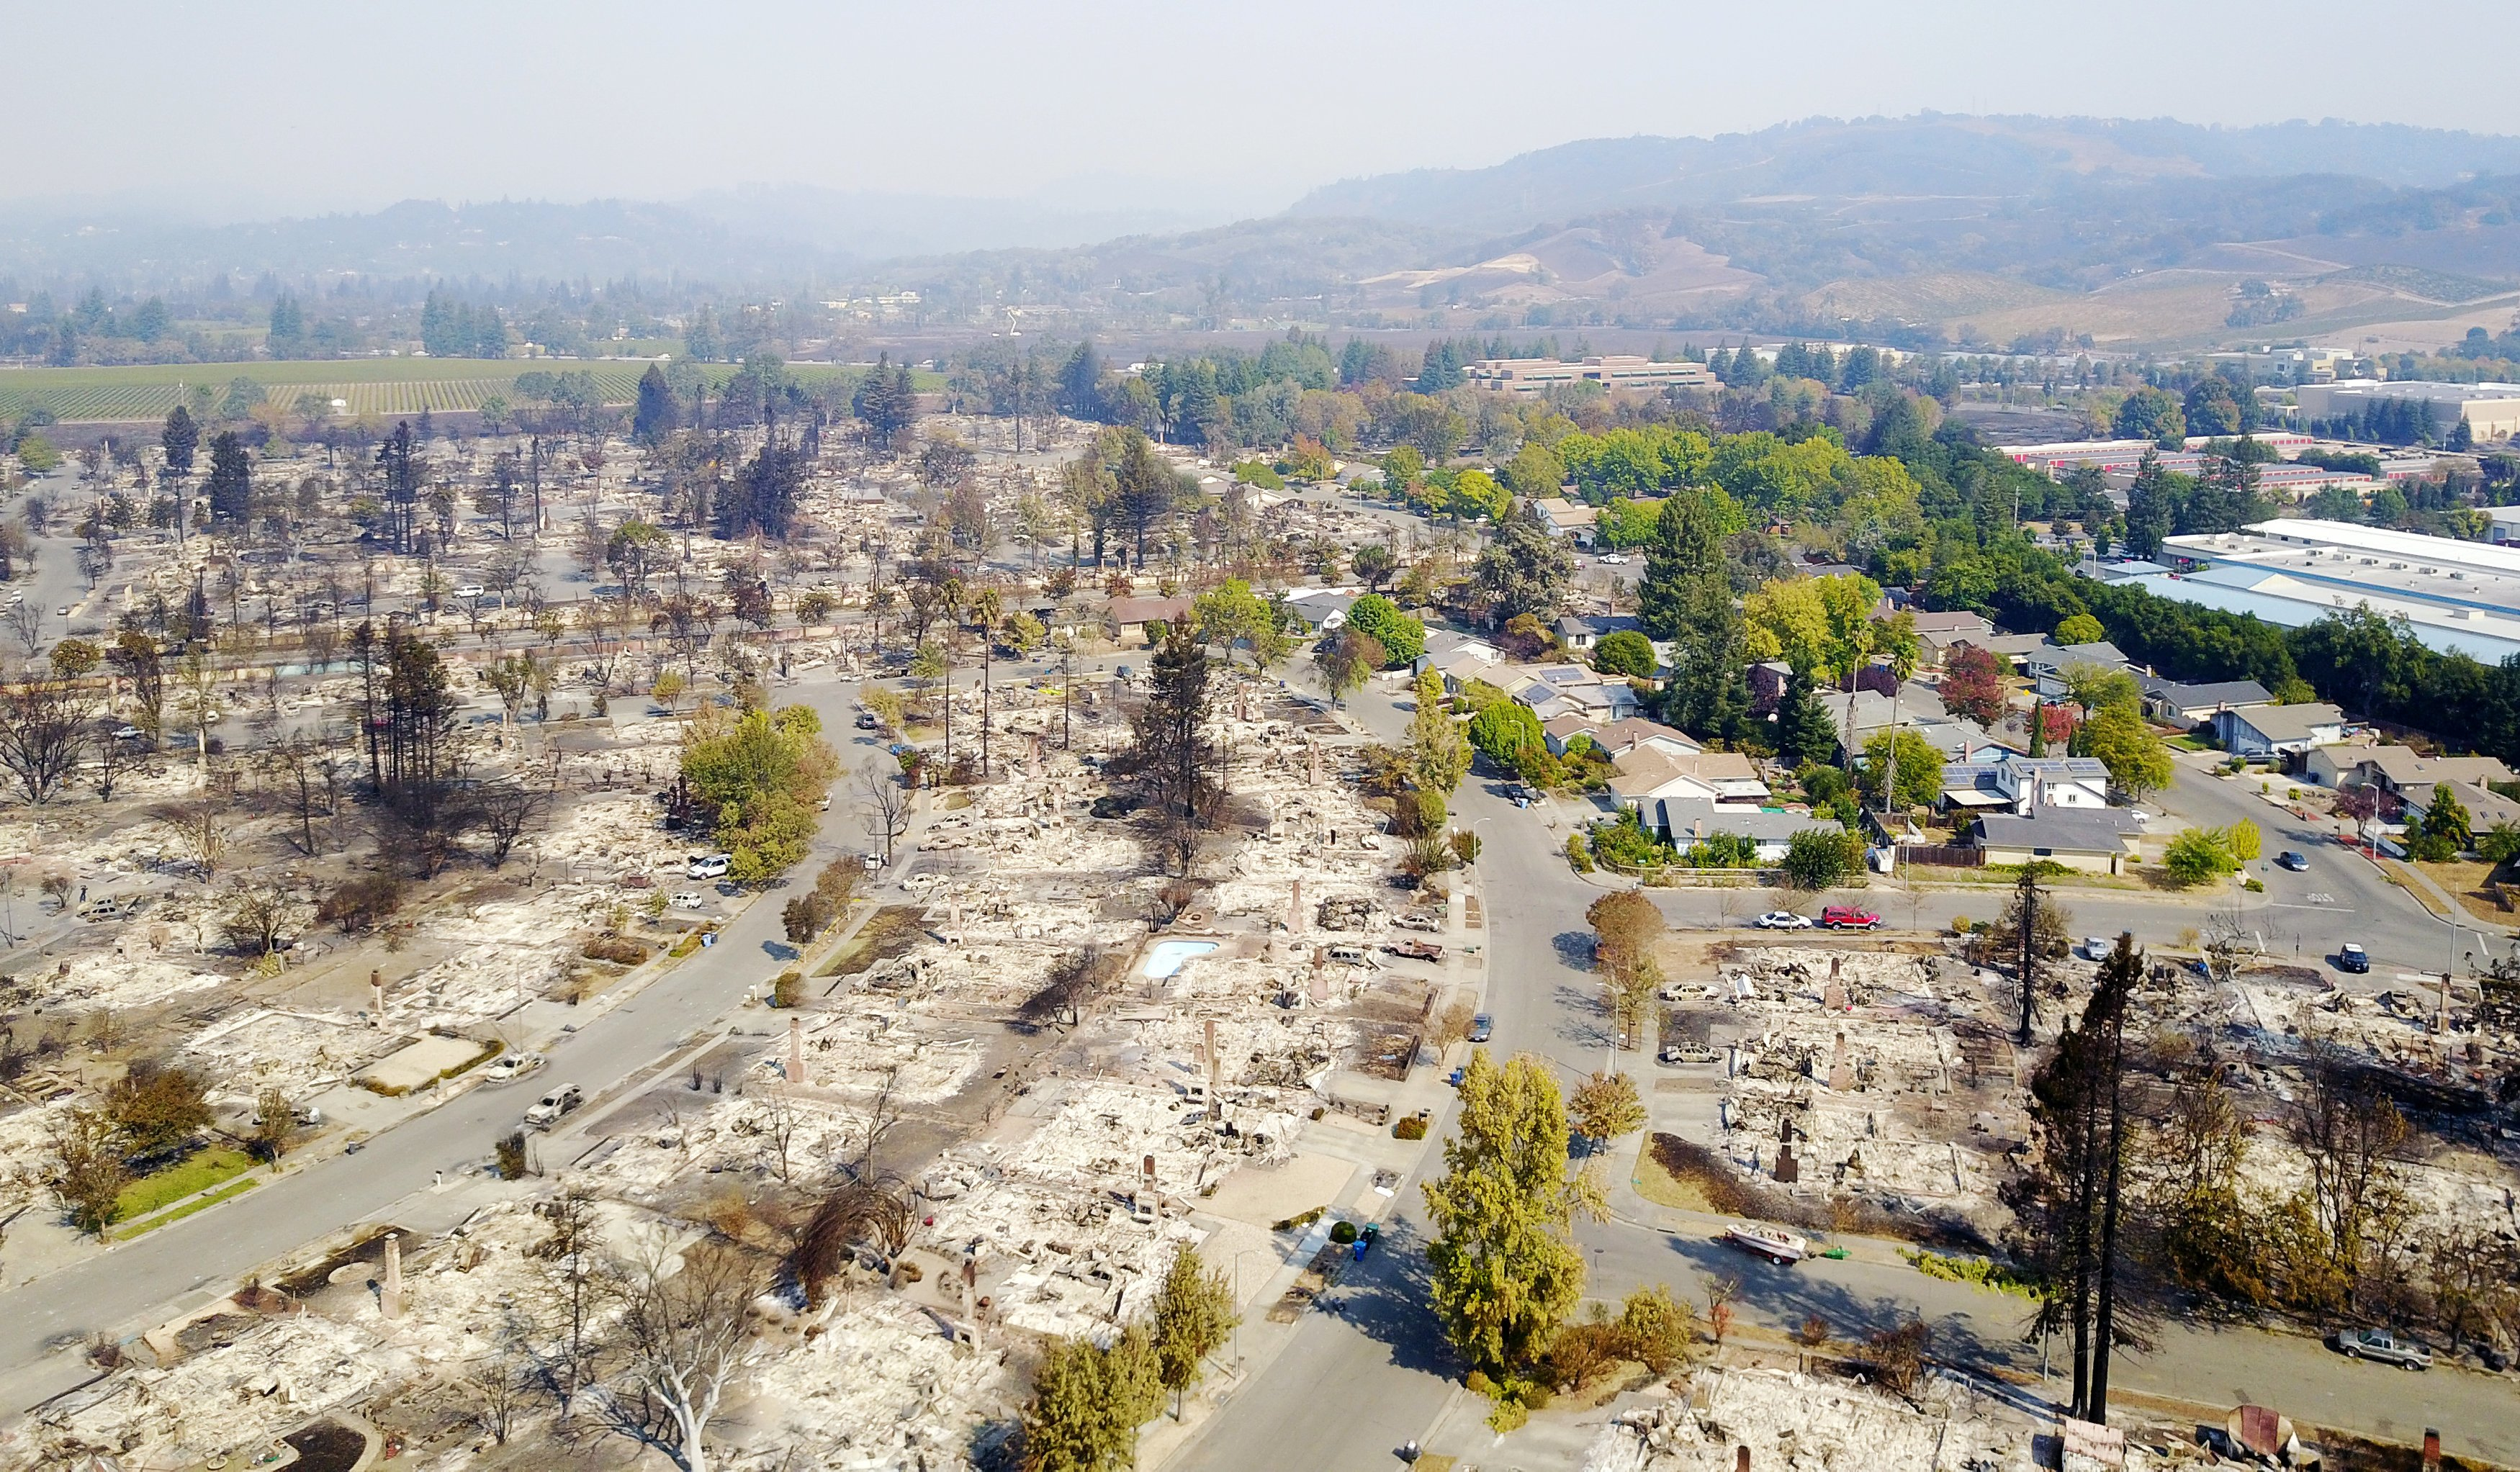 An aerial shows damage caused by wildfires in Santa Rosa, California, U.S October 11, 2017. Picture taken October 11, 2017. REUTERS/DroneBase